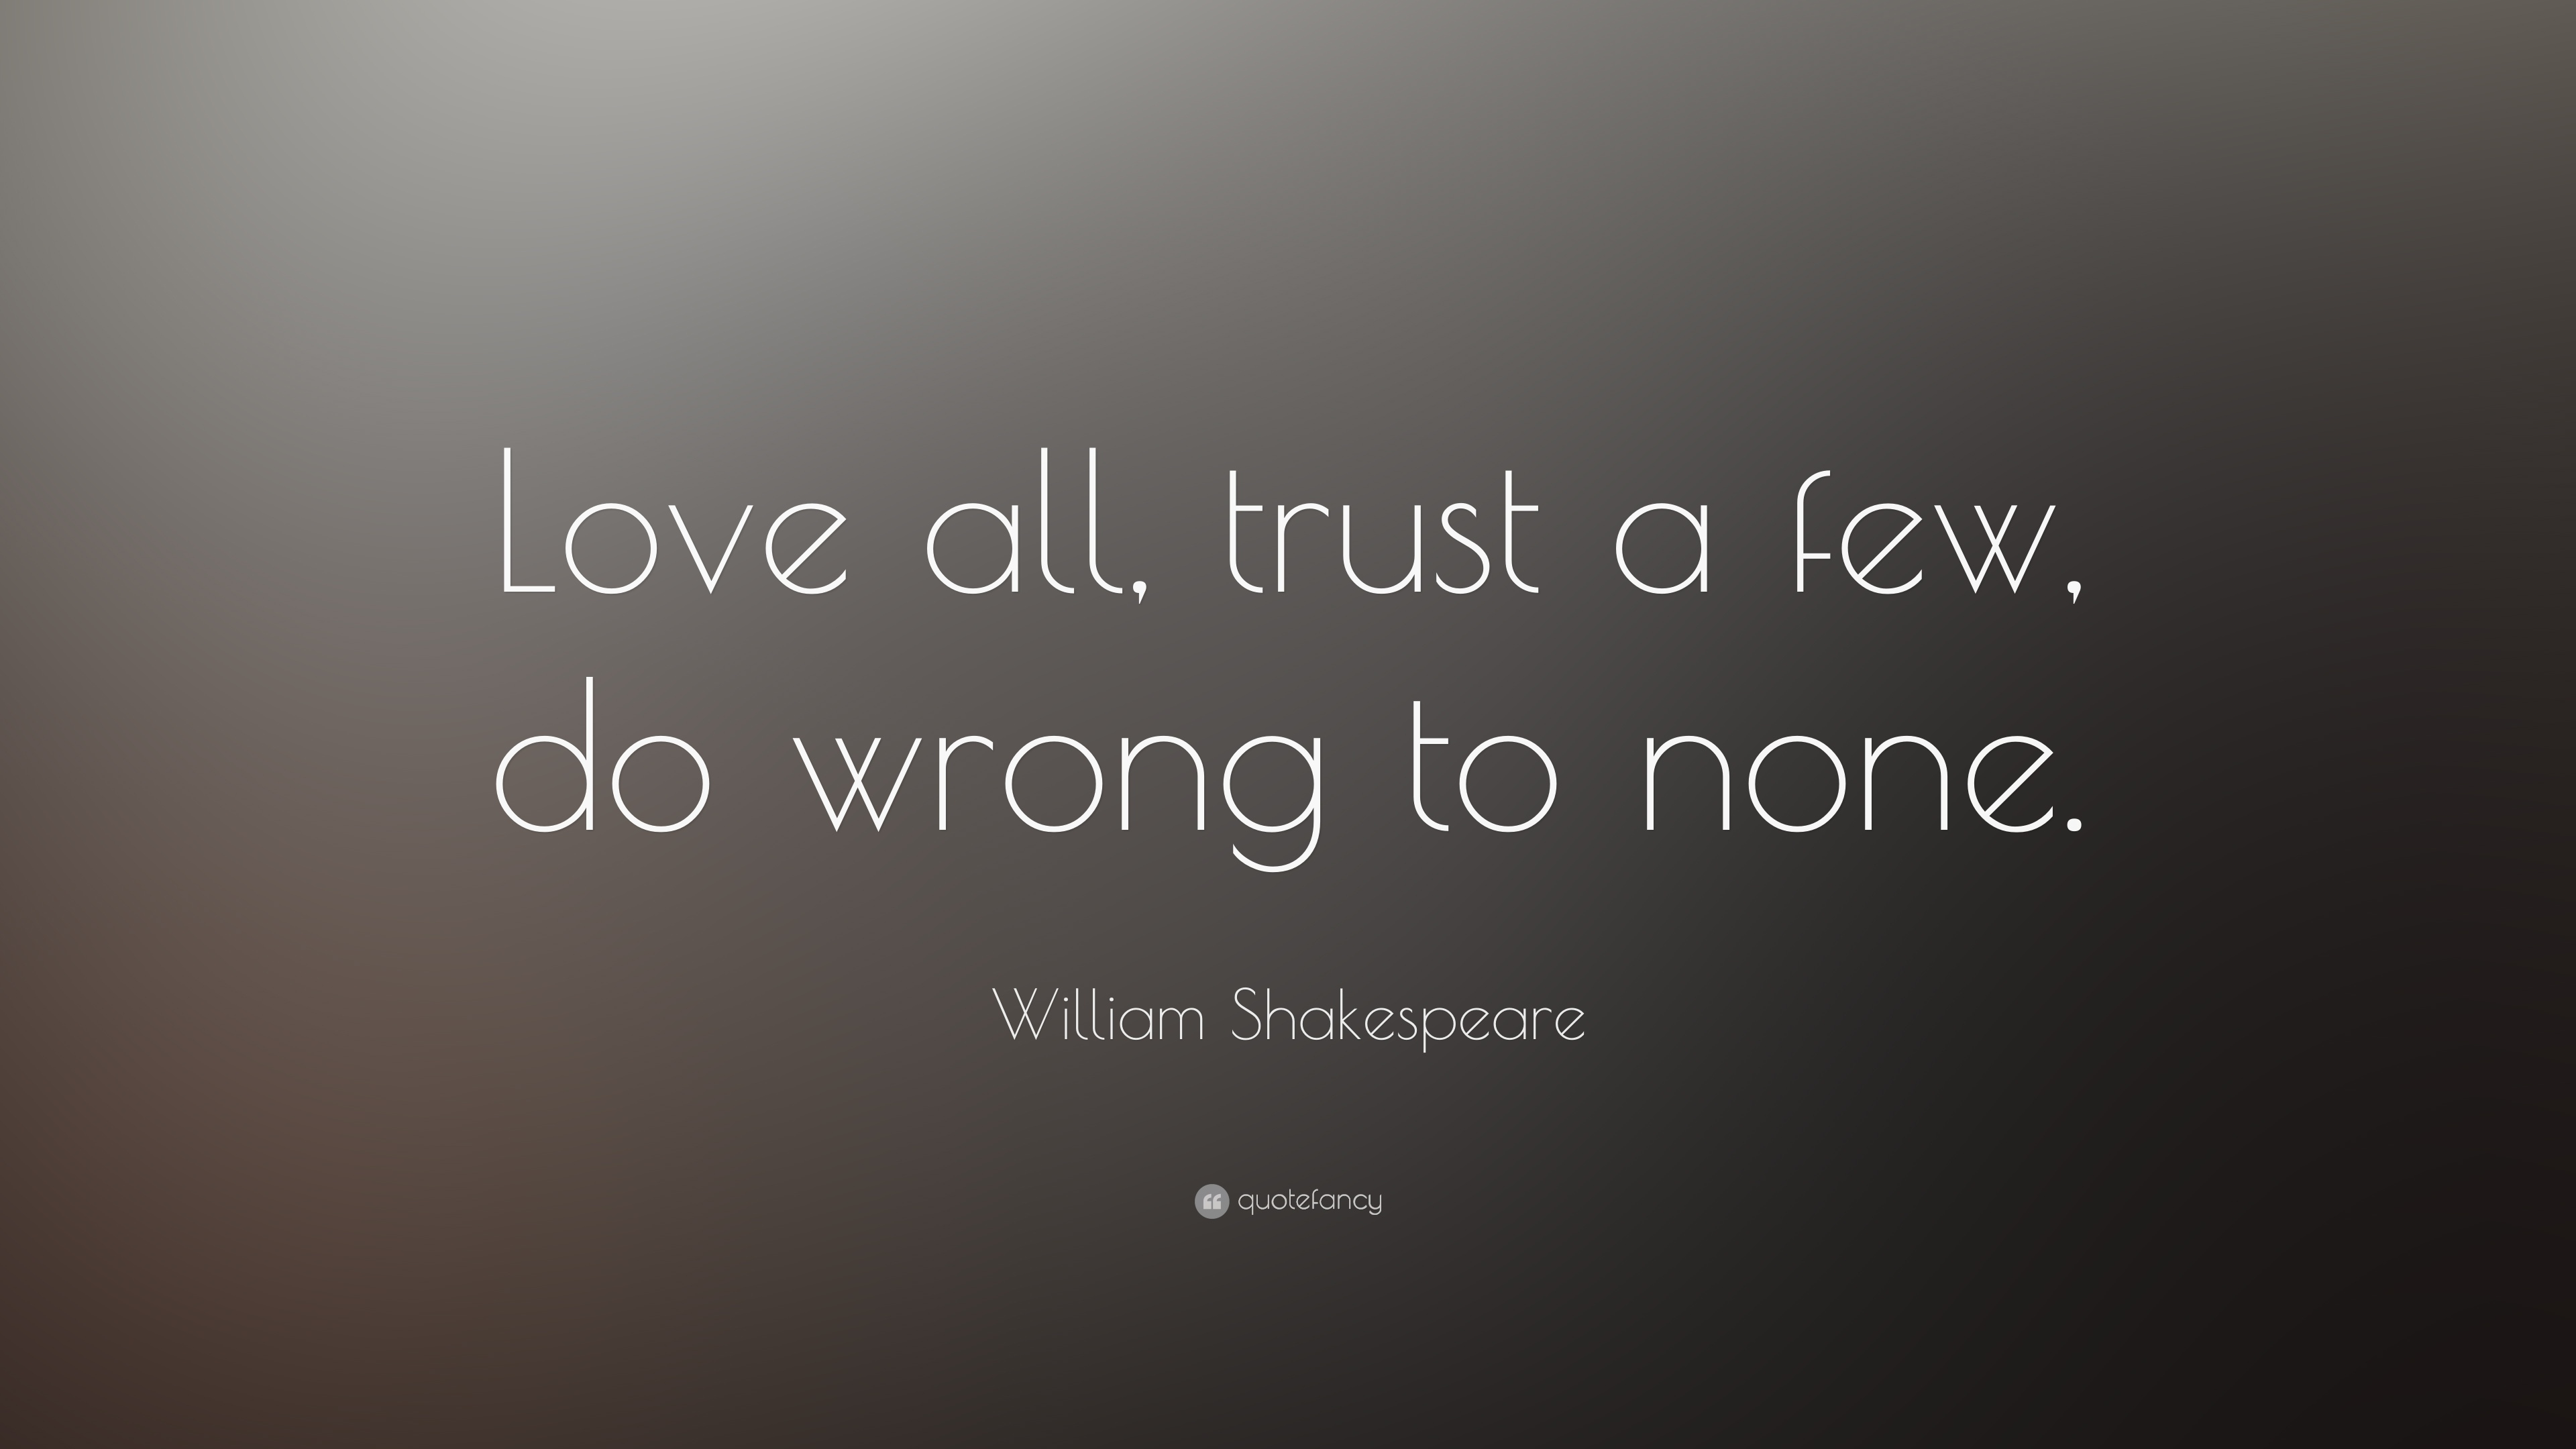 Shakespeare Love Quotes Wallpaper : William Shakespeare Quote: ?Love all, trust a few, do wrong to none.? (11 wallpapers) - Quotefancy